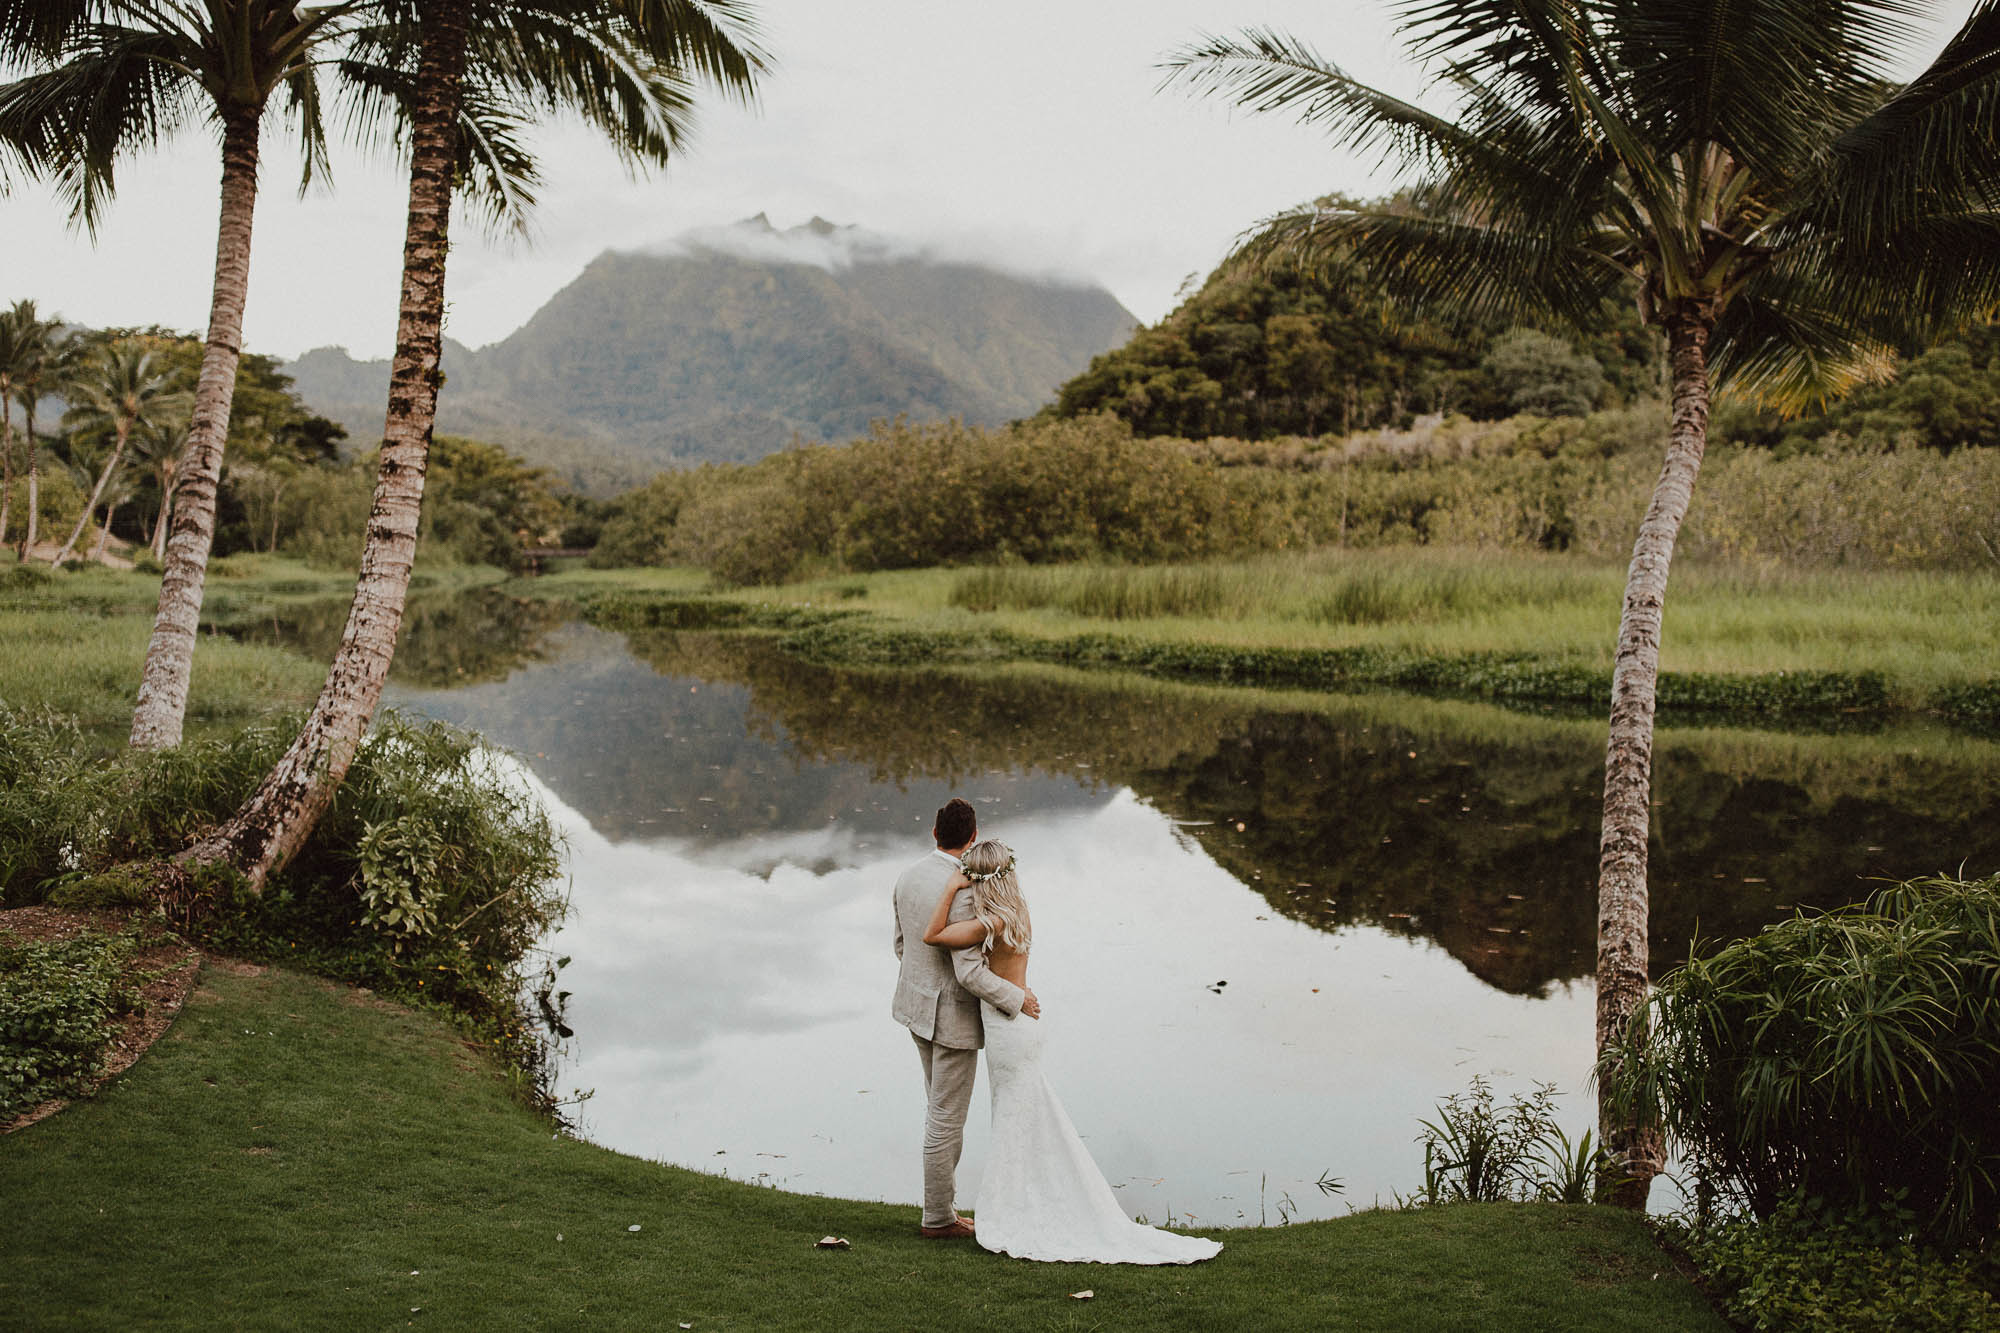 Wedding photos in paradise backless dress hanalei north shore kauai hawaii